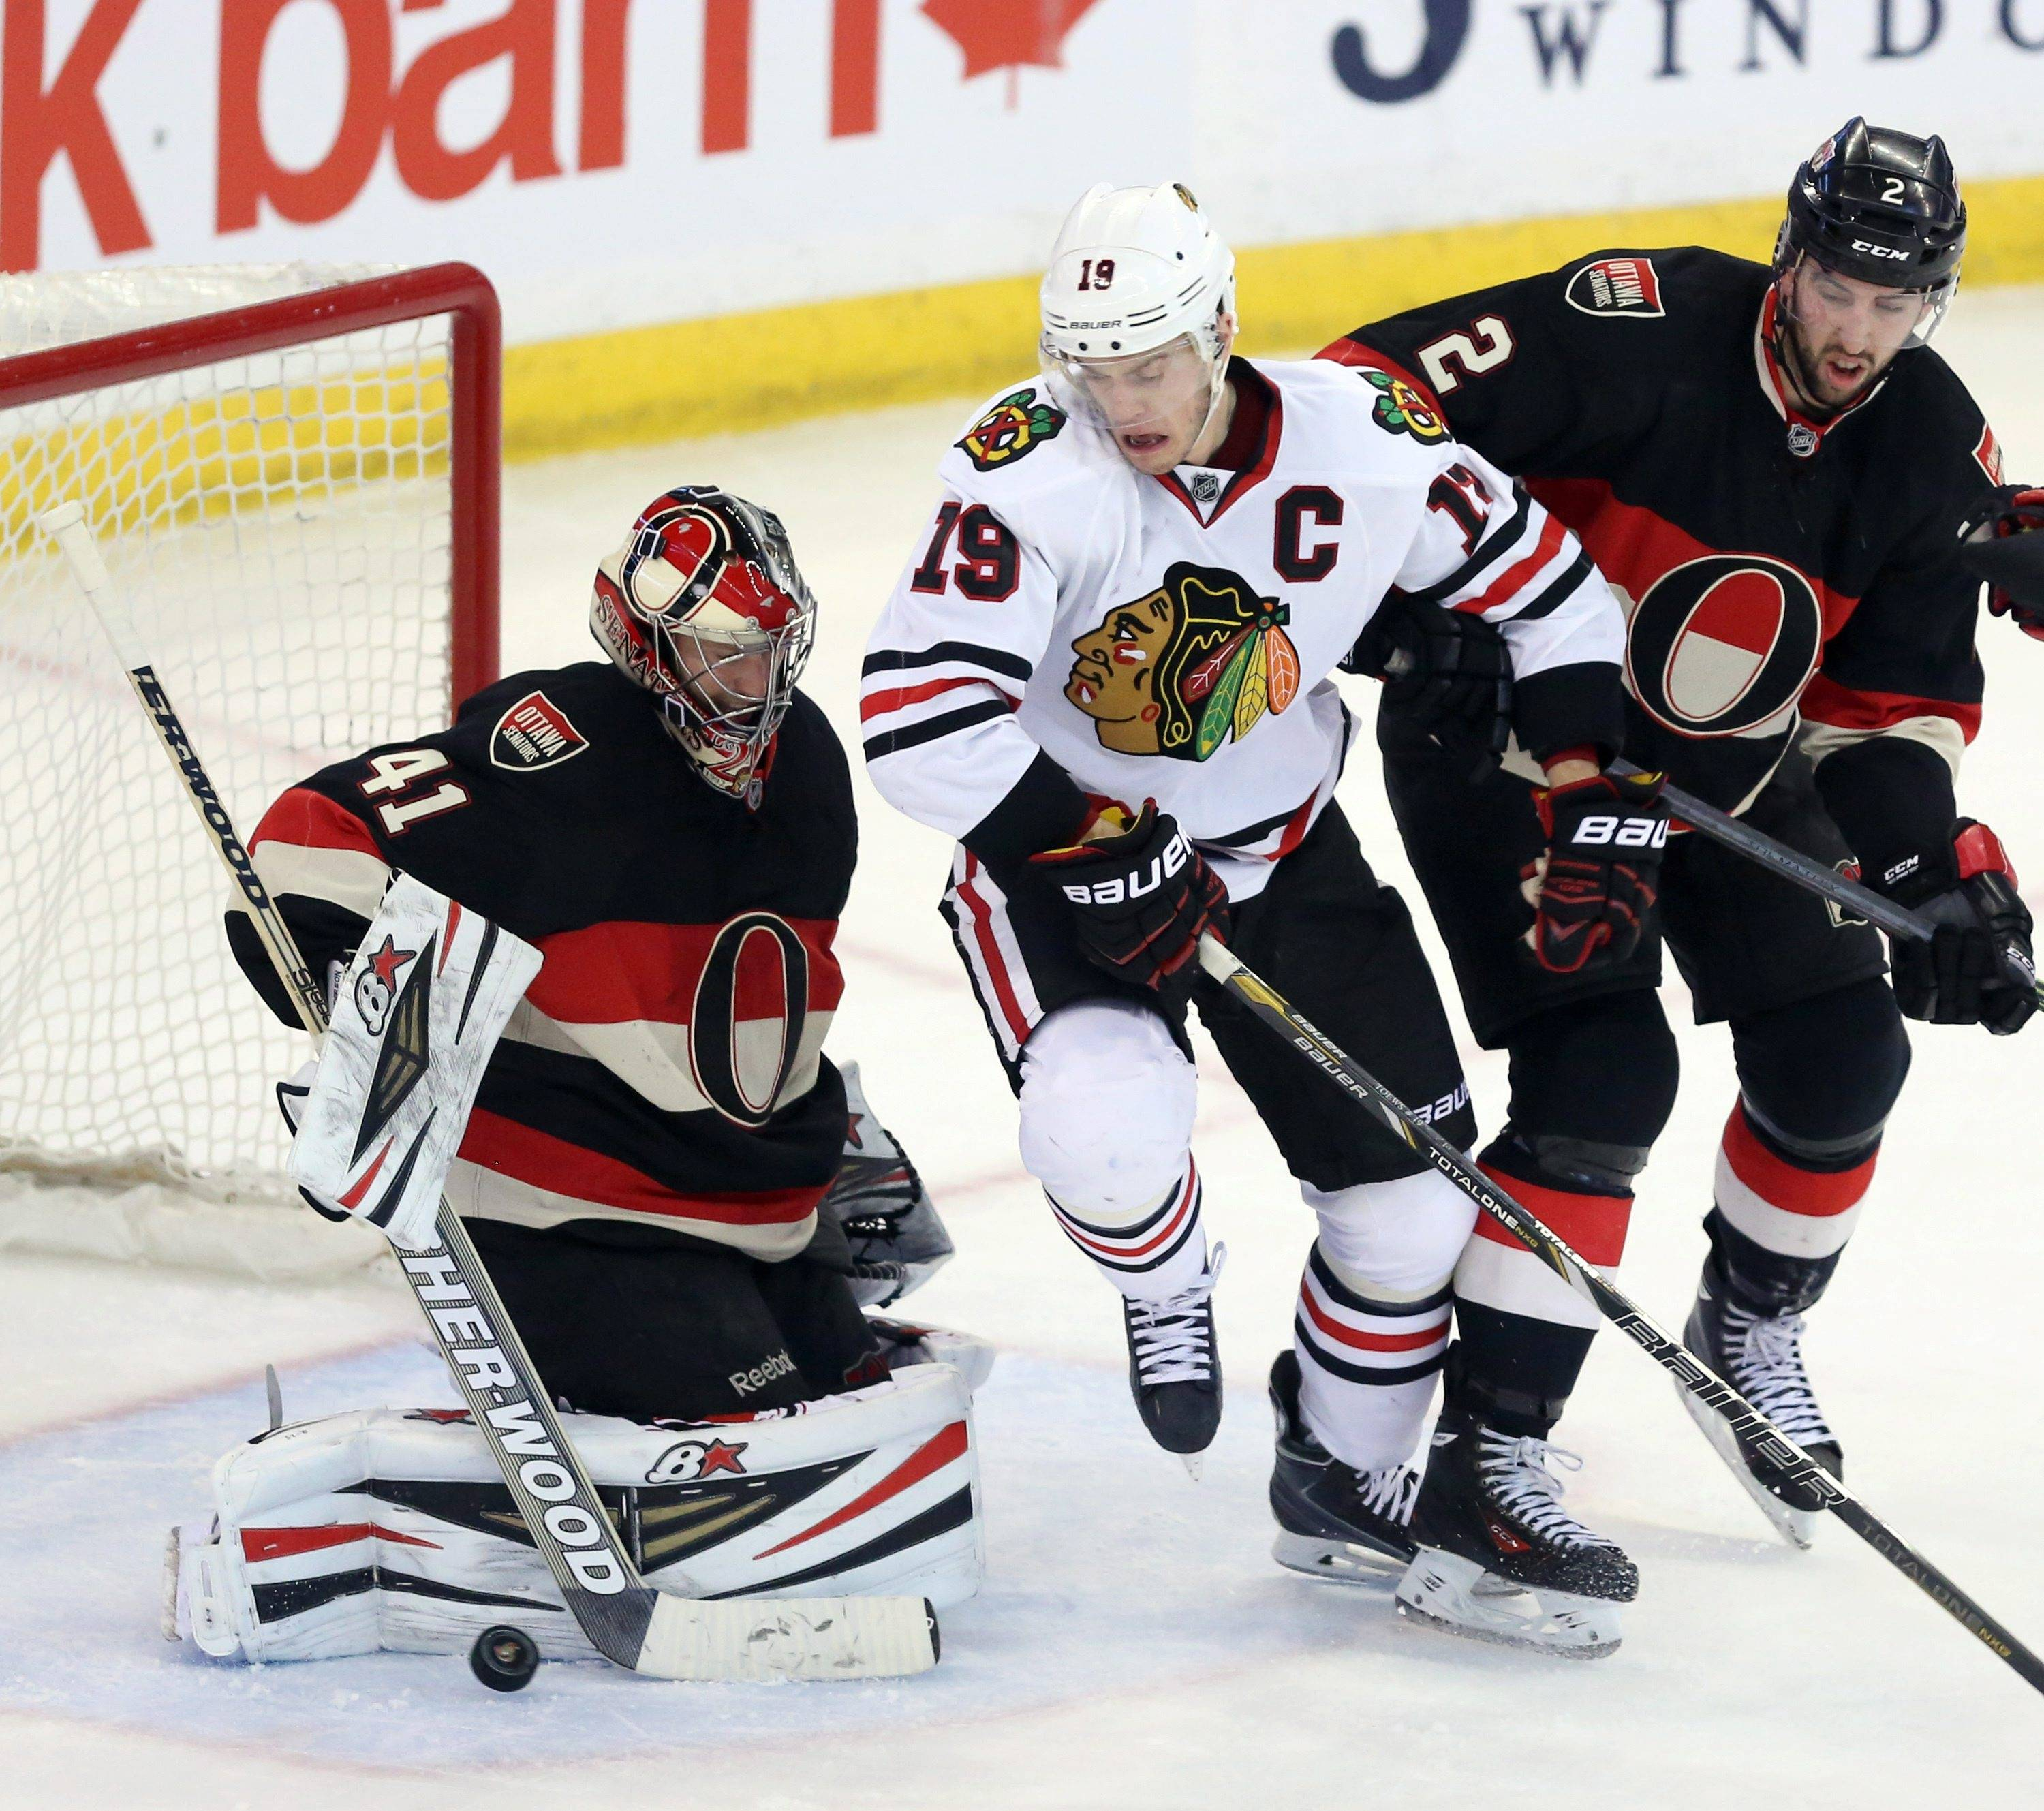 Ottawa Senators goaltender Craig Anderson (41) clears the puck as teammate Jared Cowen (2) and Chicago Blackhawks' Jonathan Toews (19) battle in front of the net during second-period NHL hockey game action in Ottawa, Ontario, Friday, March 28, 2014.